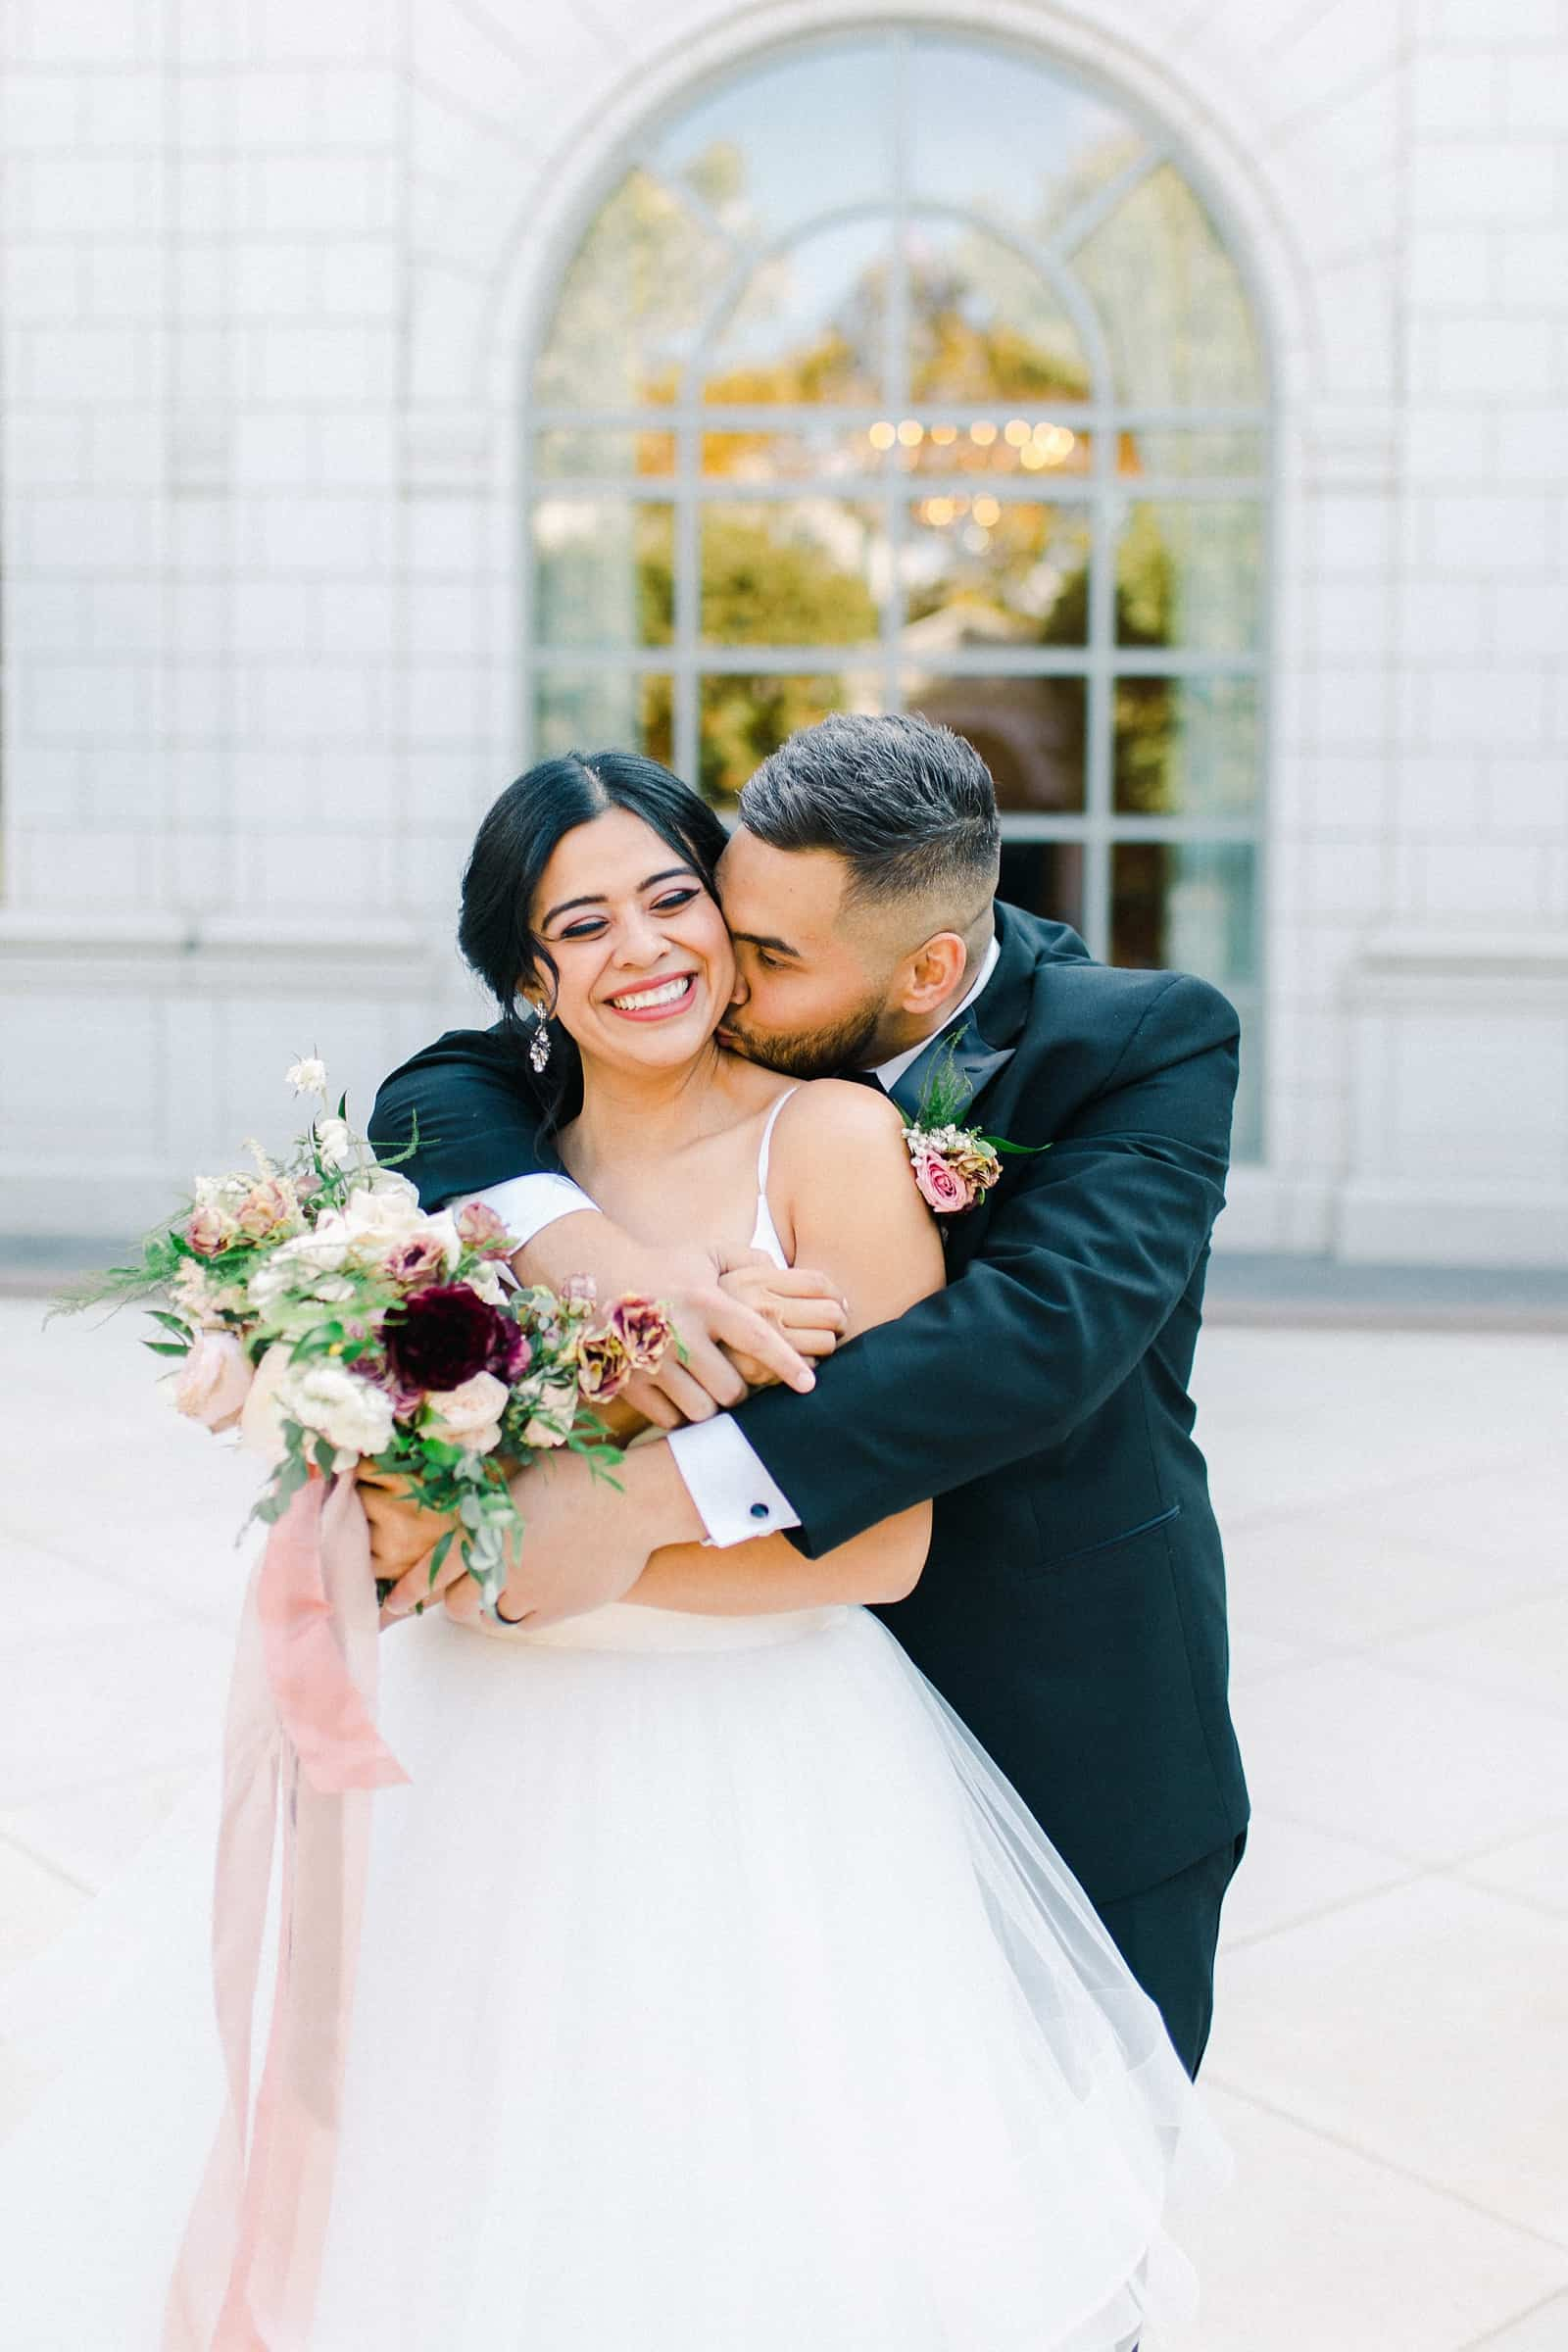 Bride and groom share a sweet moment together on their wedding day